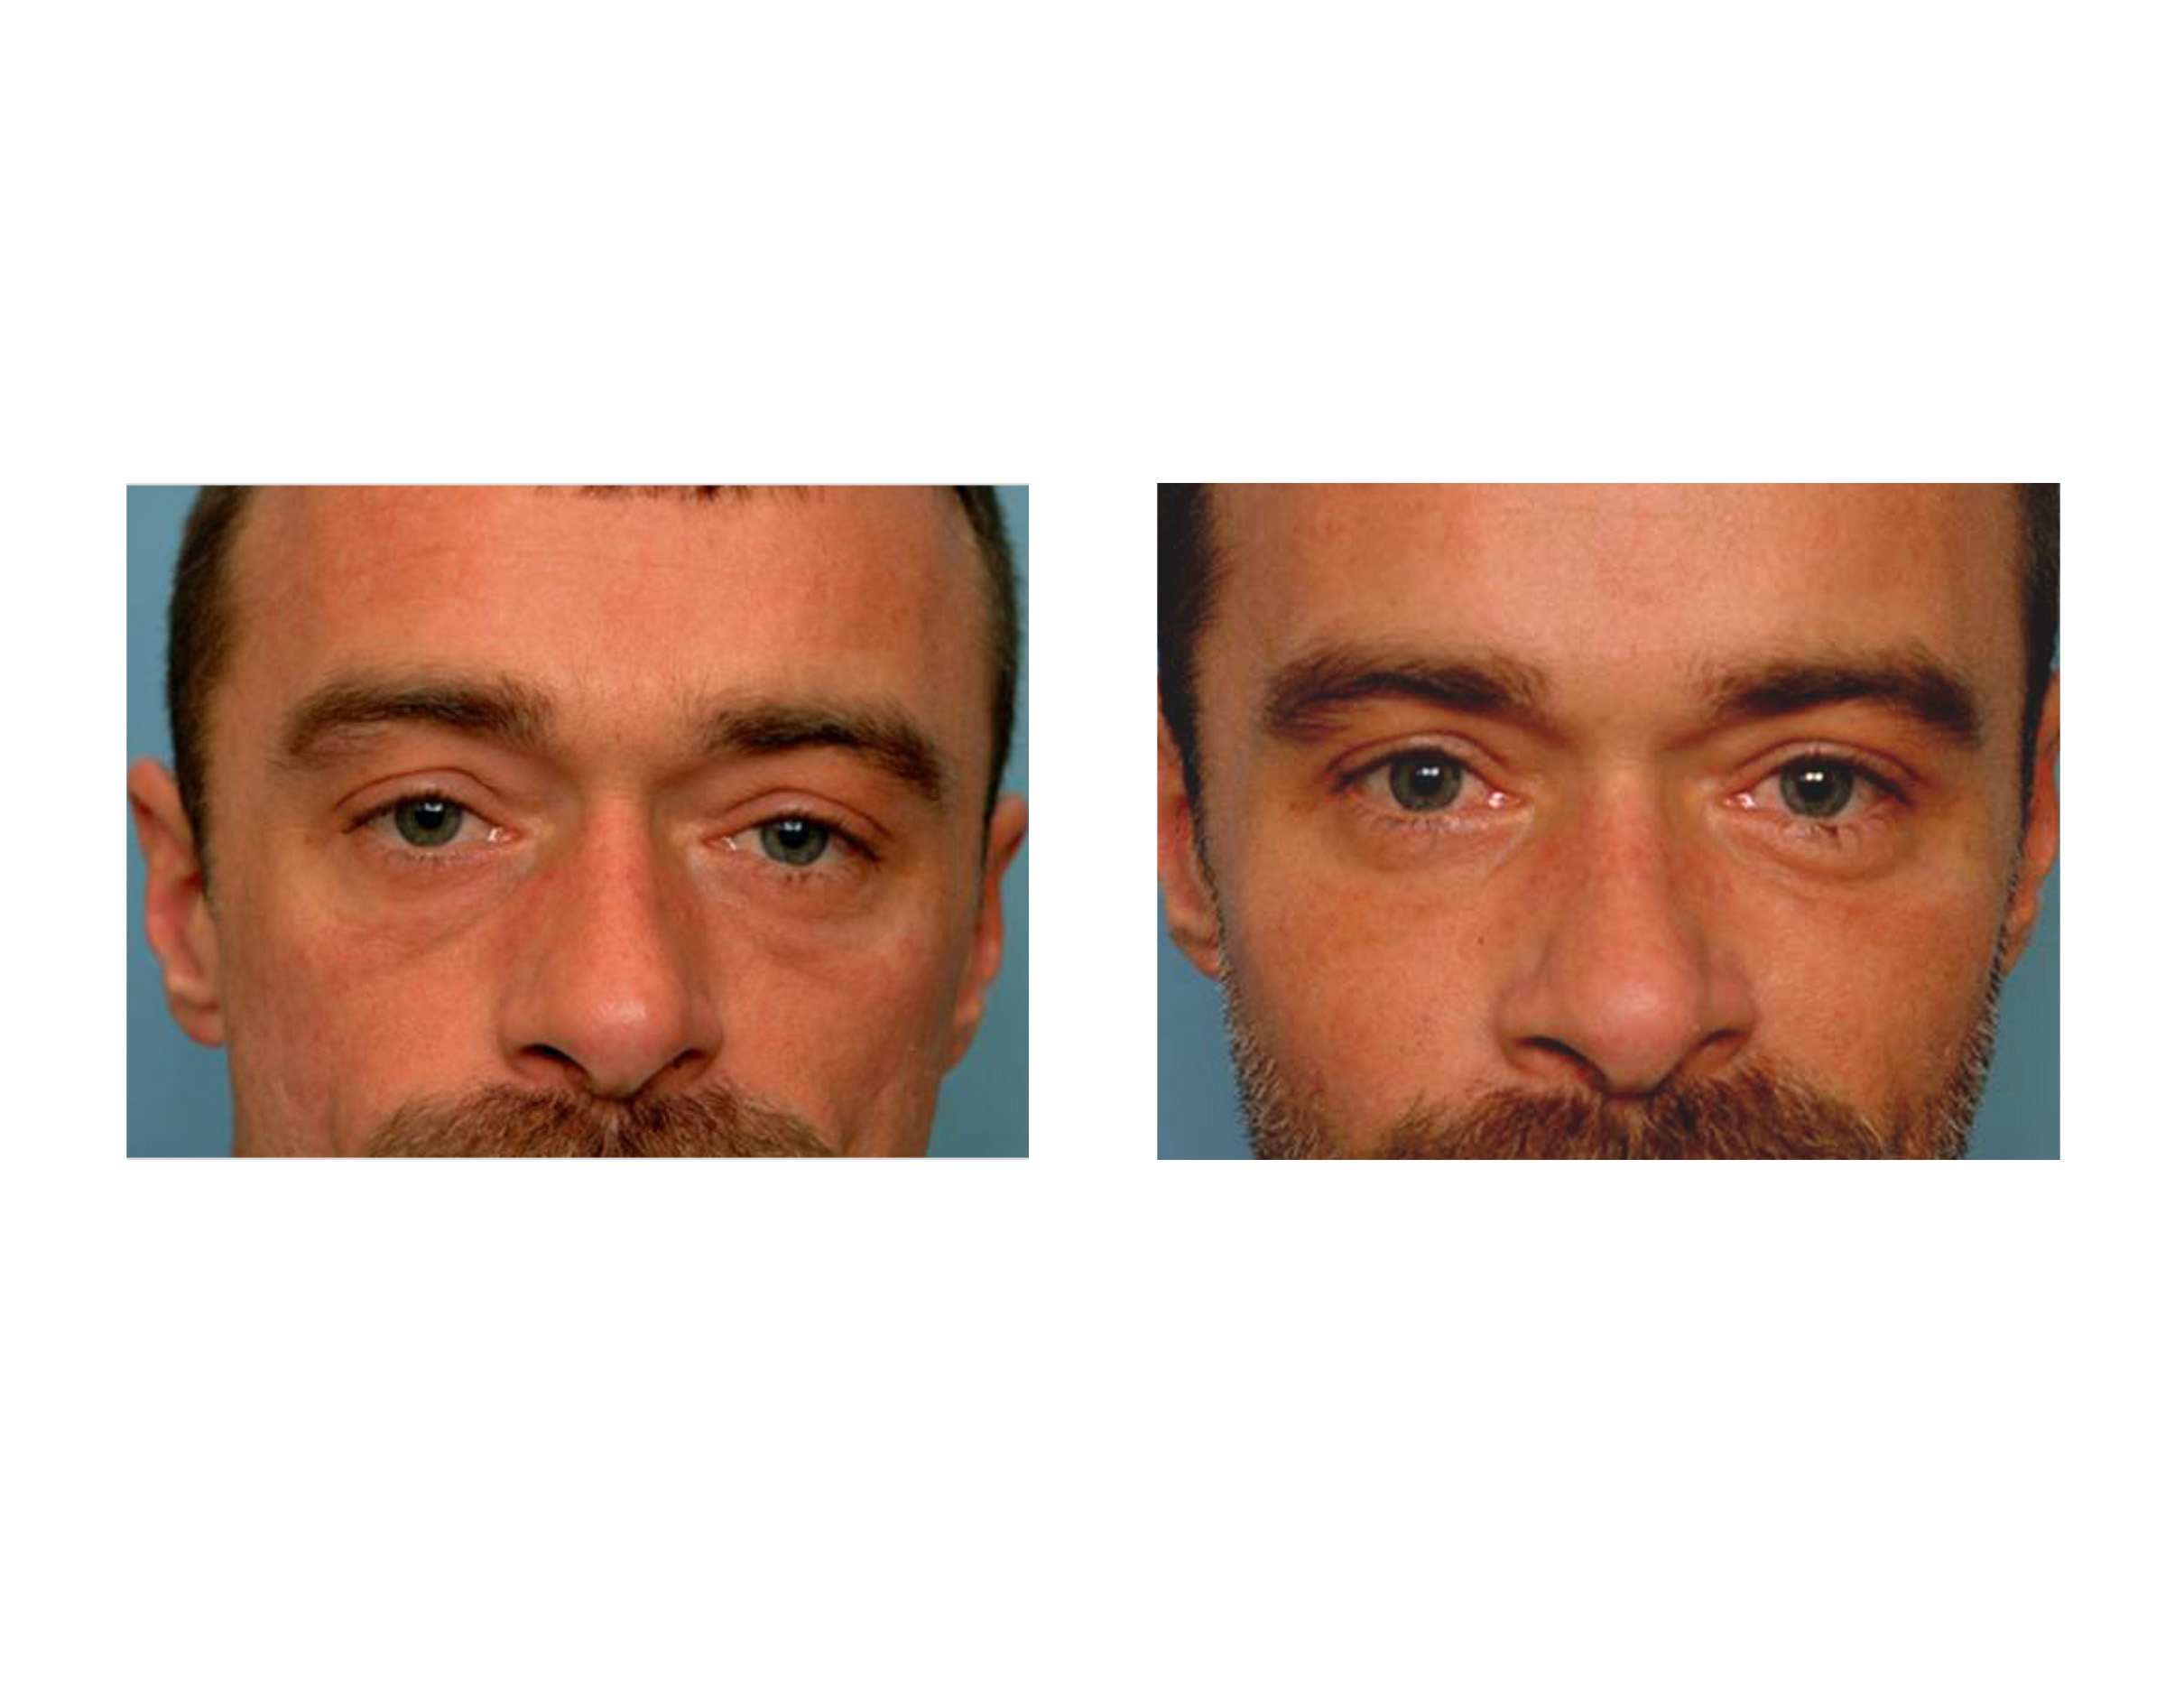 Thought was subcutaneous facial fat loss